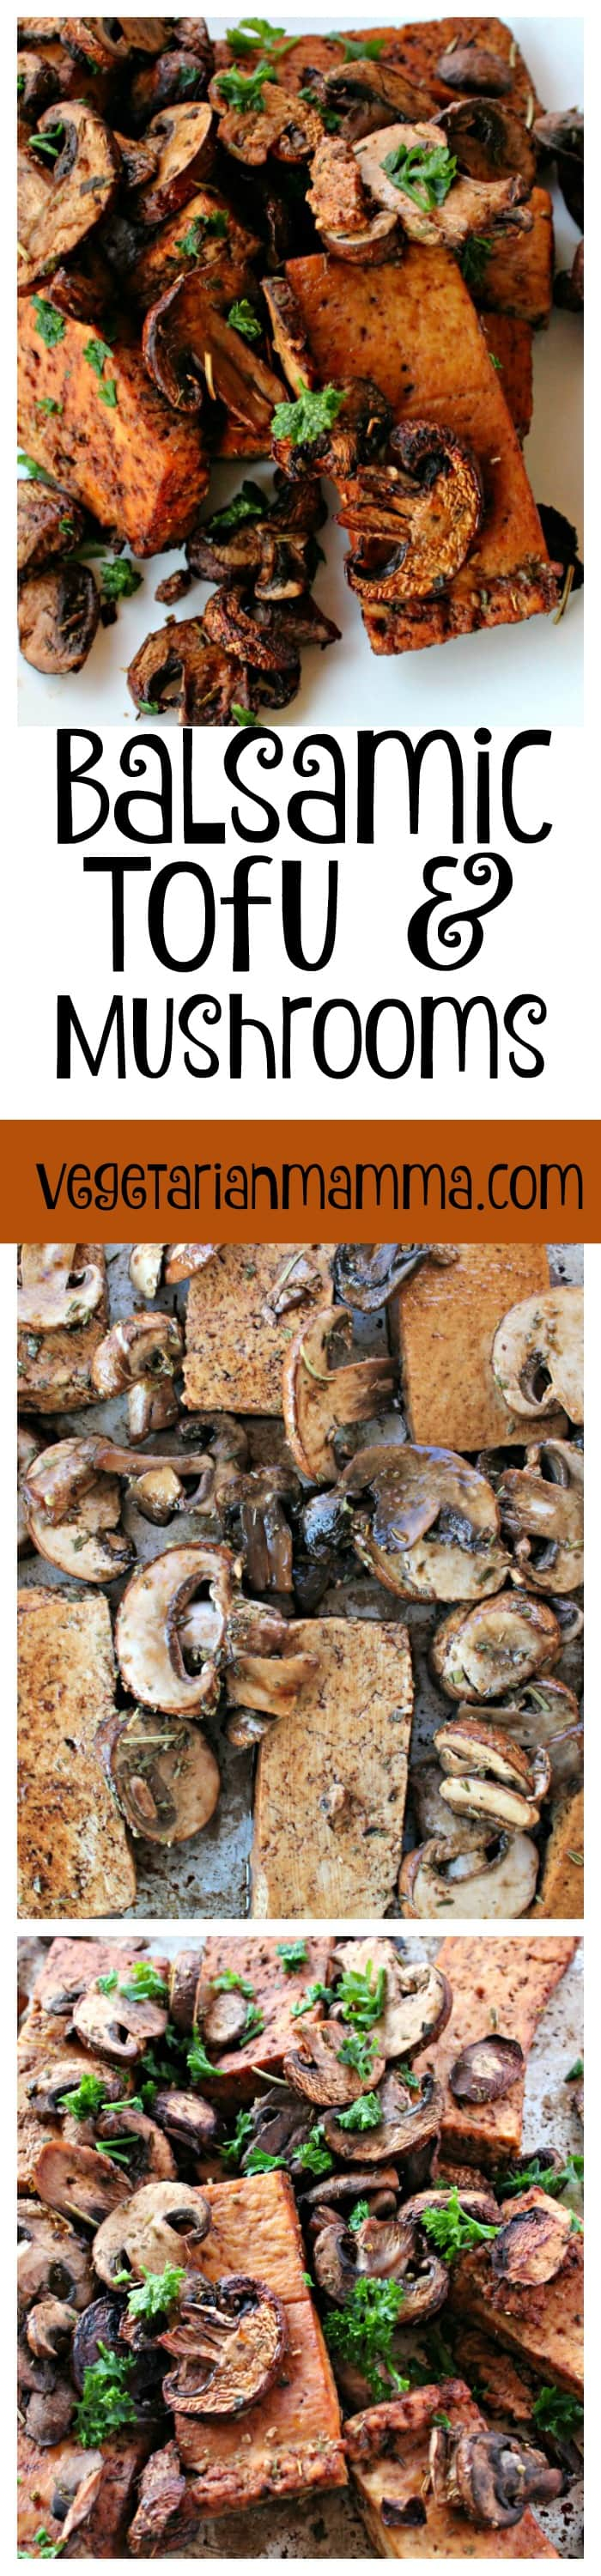 Balsamic Tofu and Mushrooms #glutenfree #vegan @vegetarianmamma